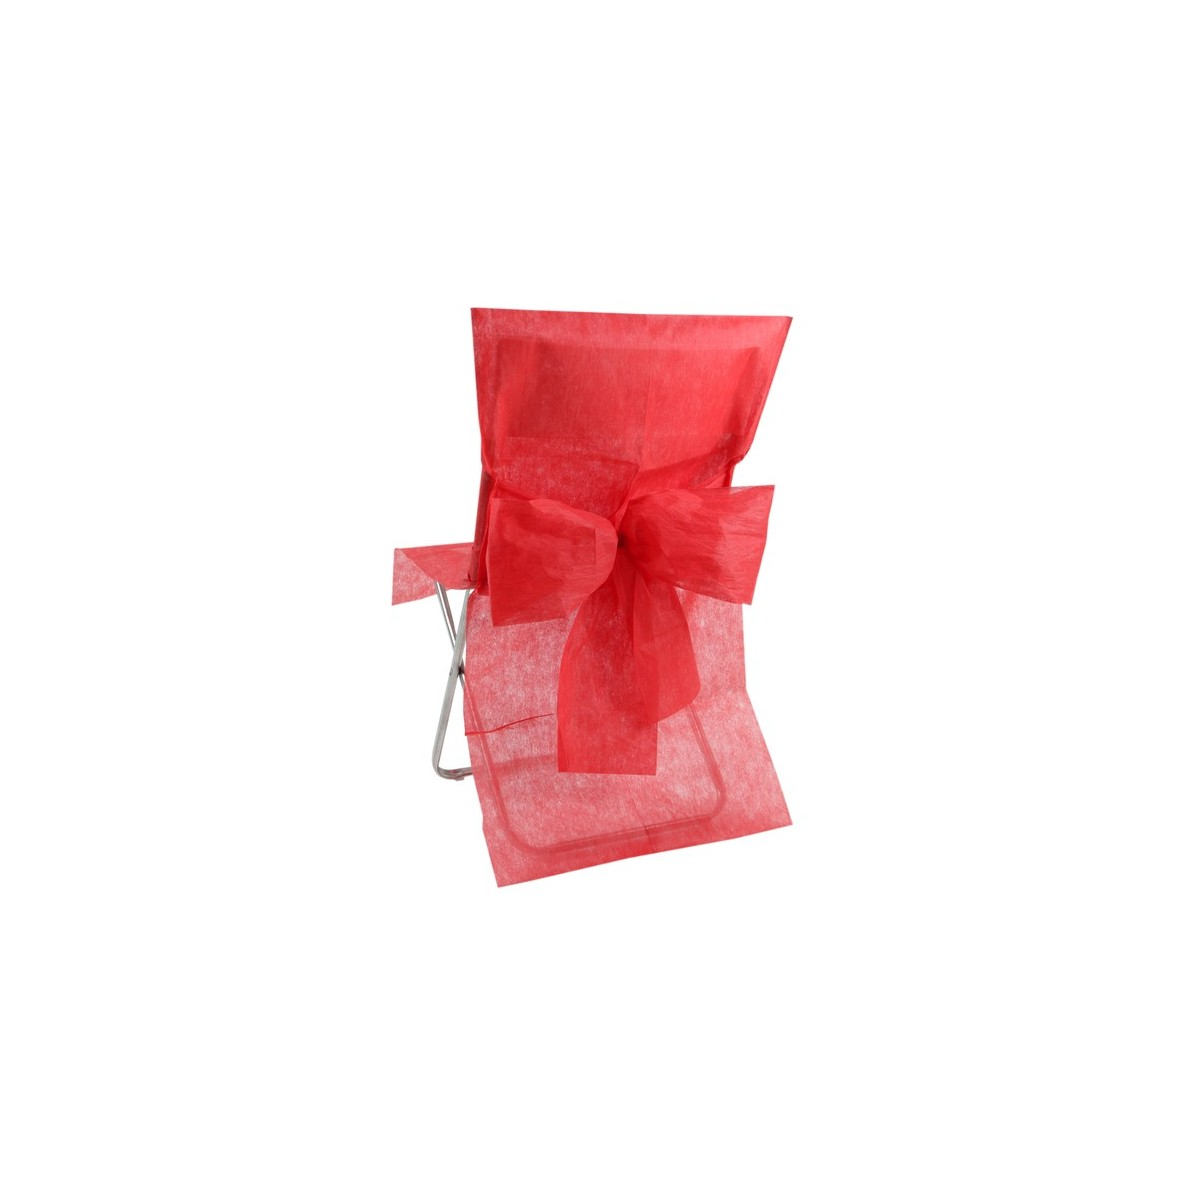 Chaises Rouges Chaises Rouges Grospcs Dcoration De Nol De Nol Santa Red